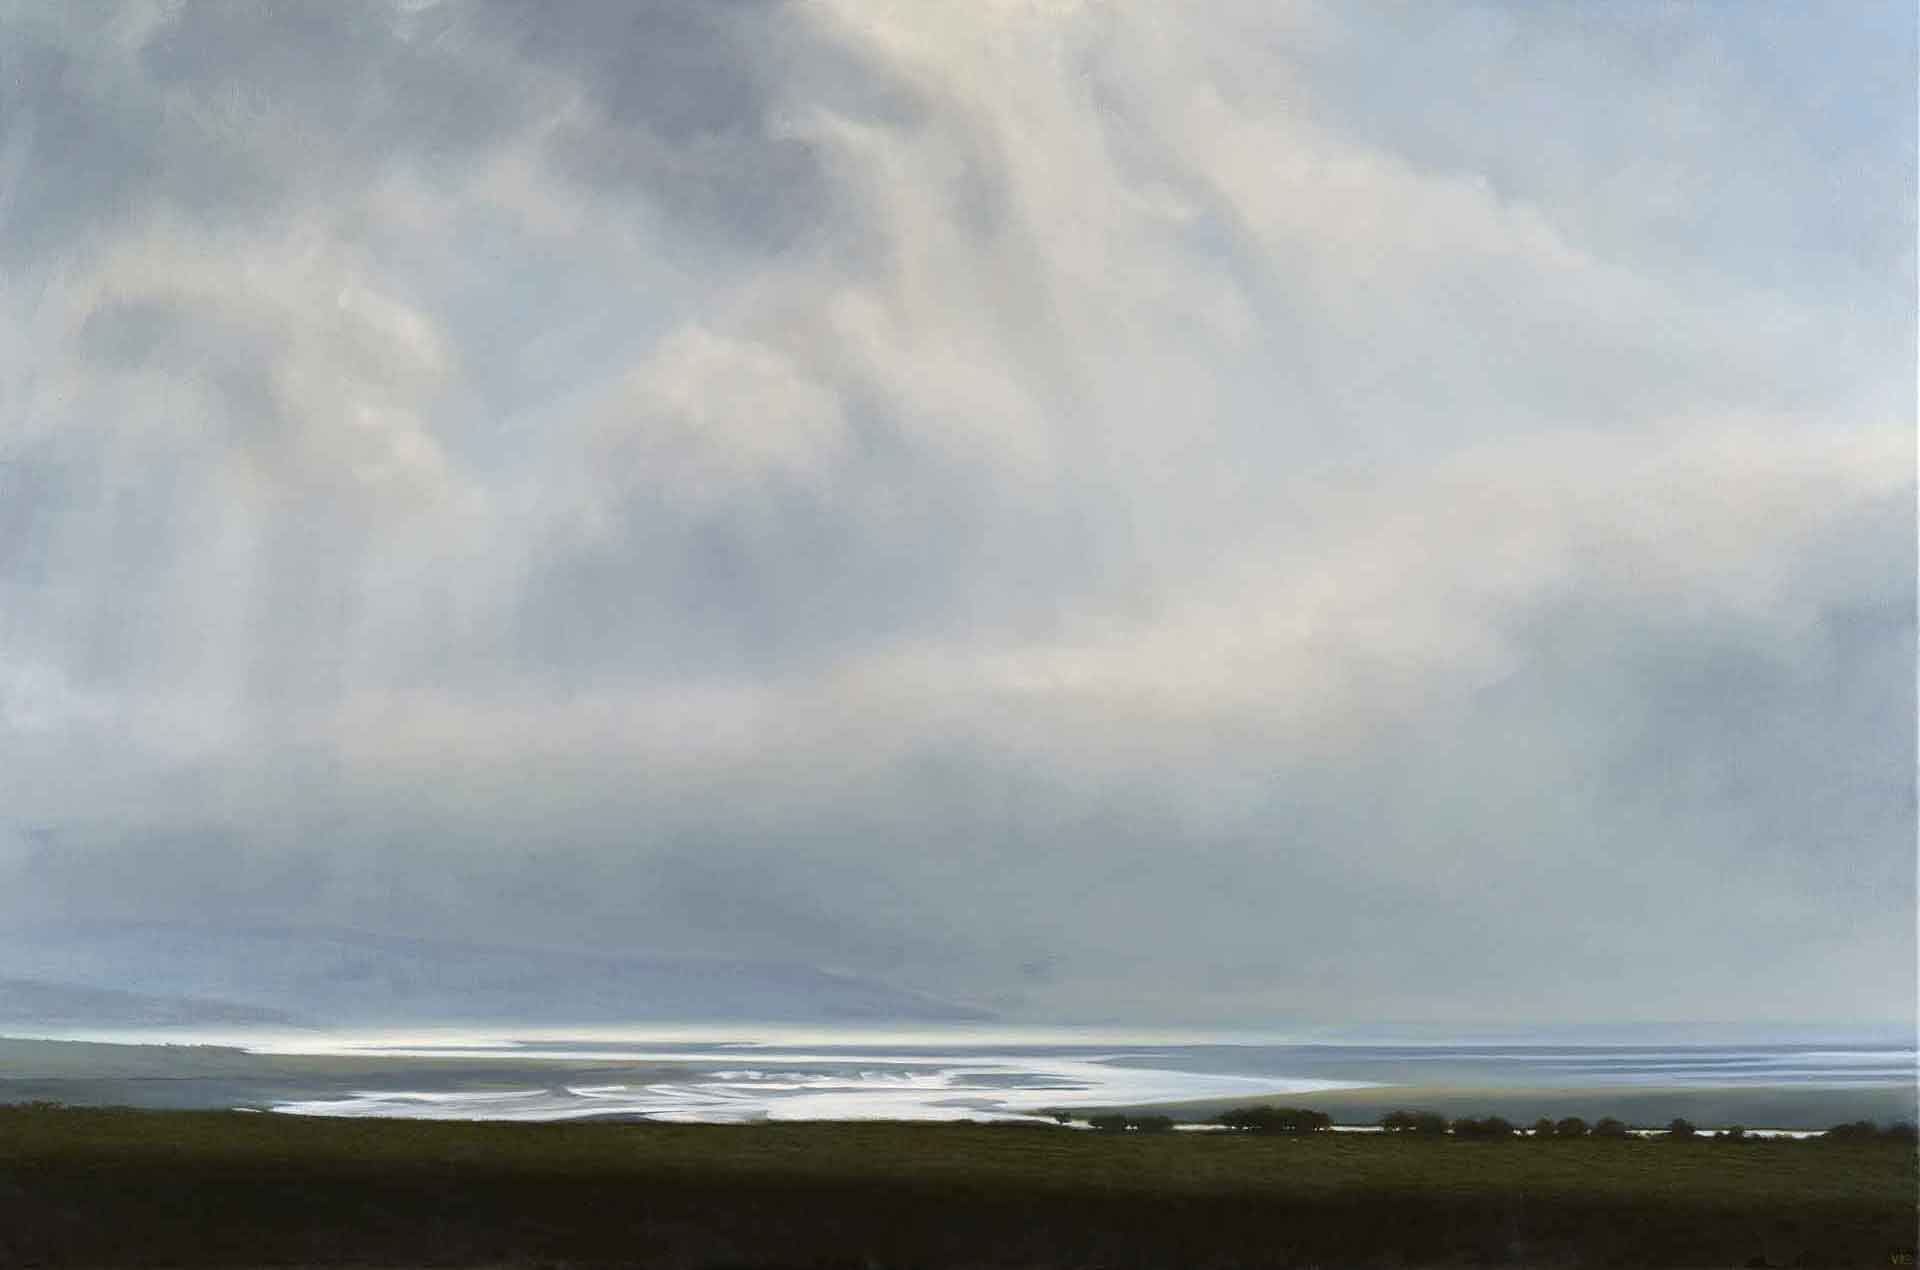 Victoria Orr Ewing's Back Catalogue of Landscape Paintings